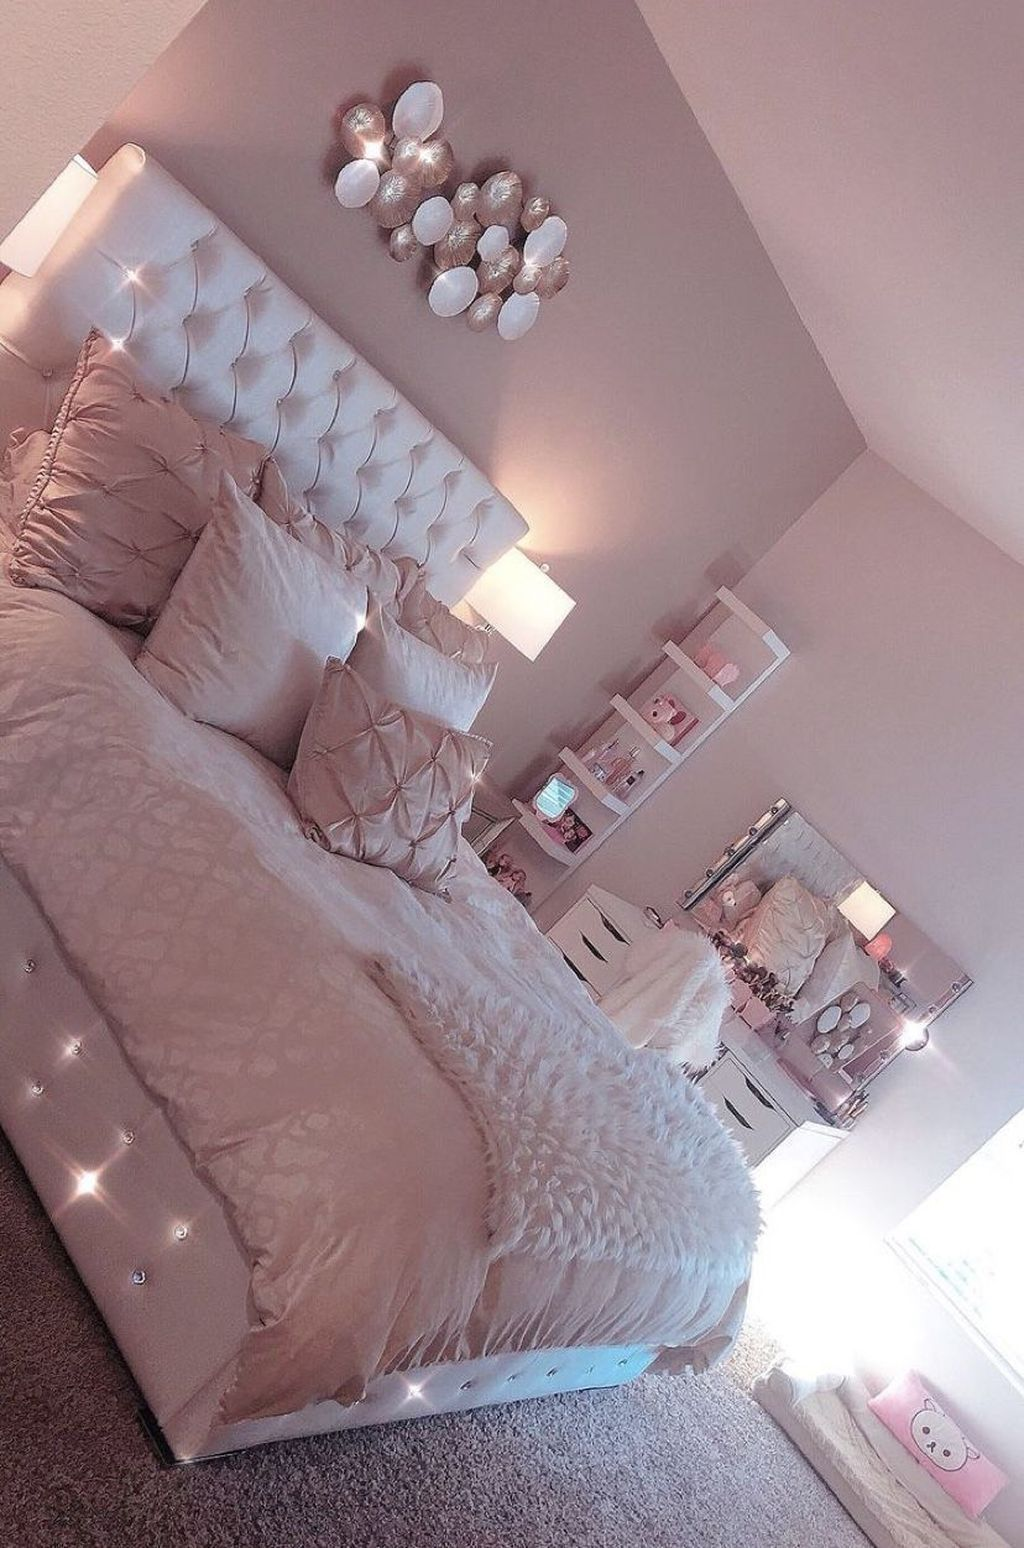 36 Beautiful Bedroom Design And Decor Ideas For Girl To Try Pink Bedroom Design Girl Bedroom Decor Pink Room Decor